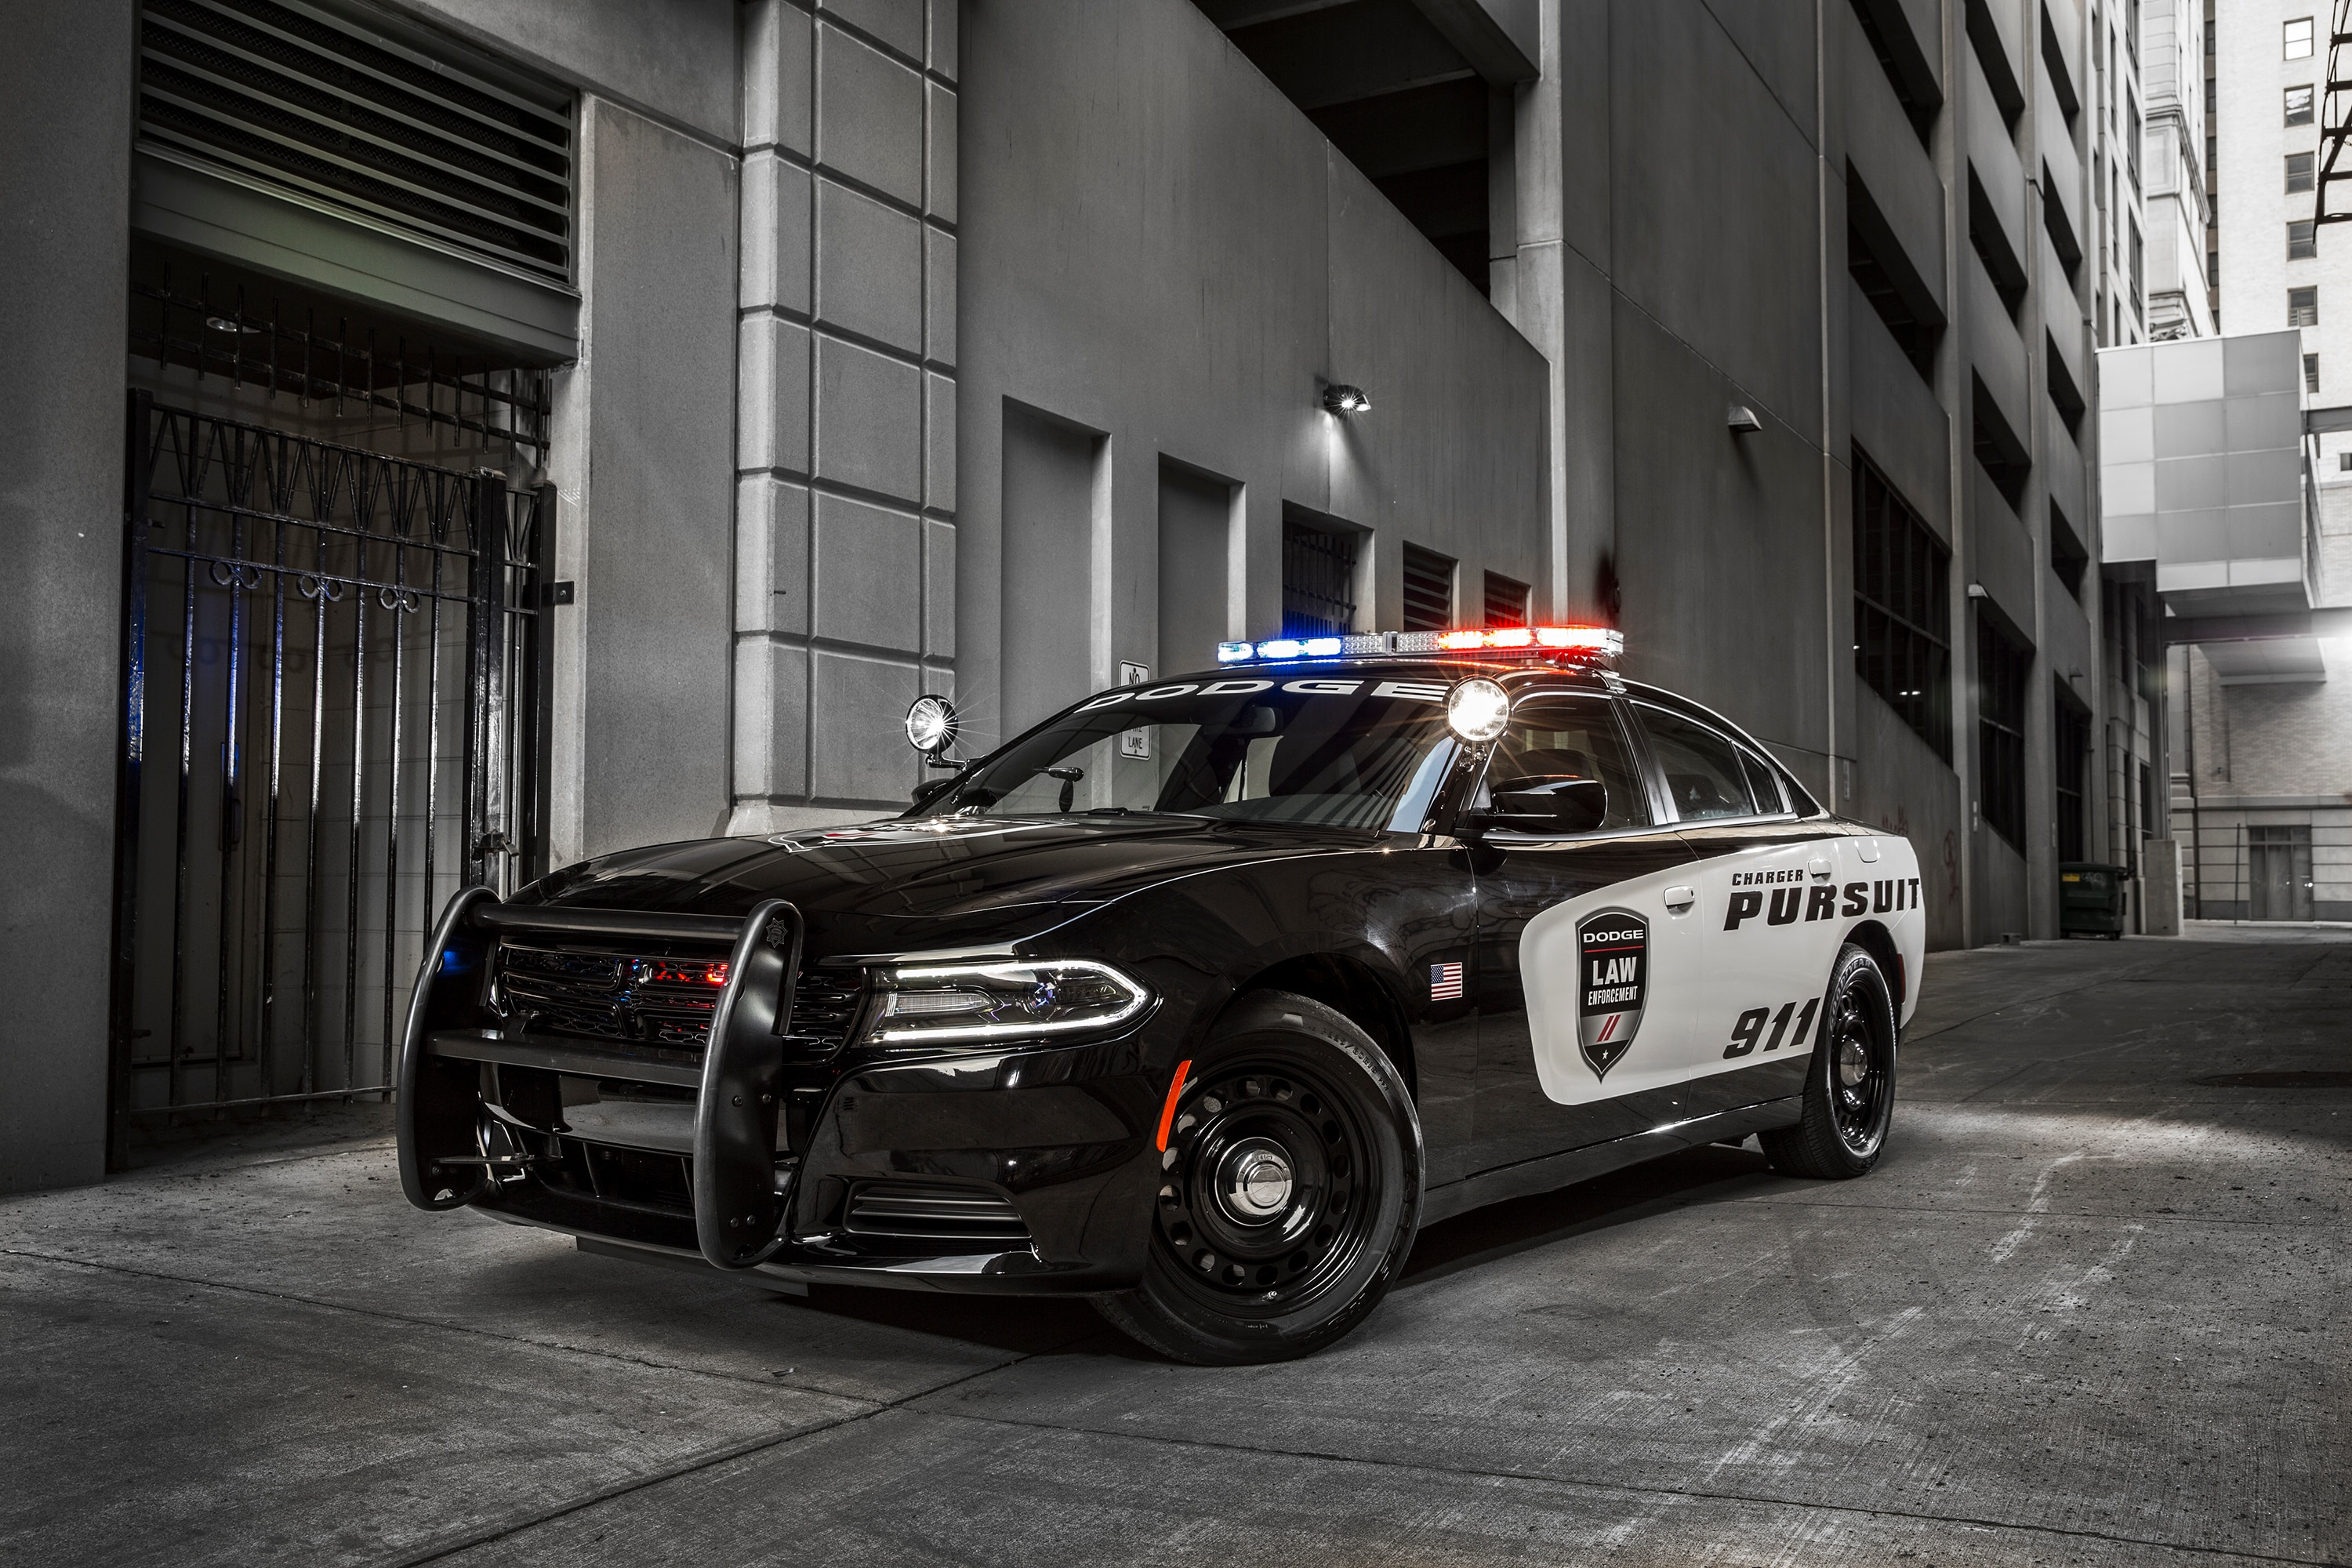 Dodge Charger Pursuit Vehicle 201811